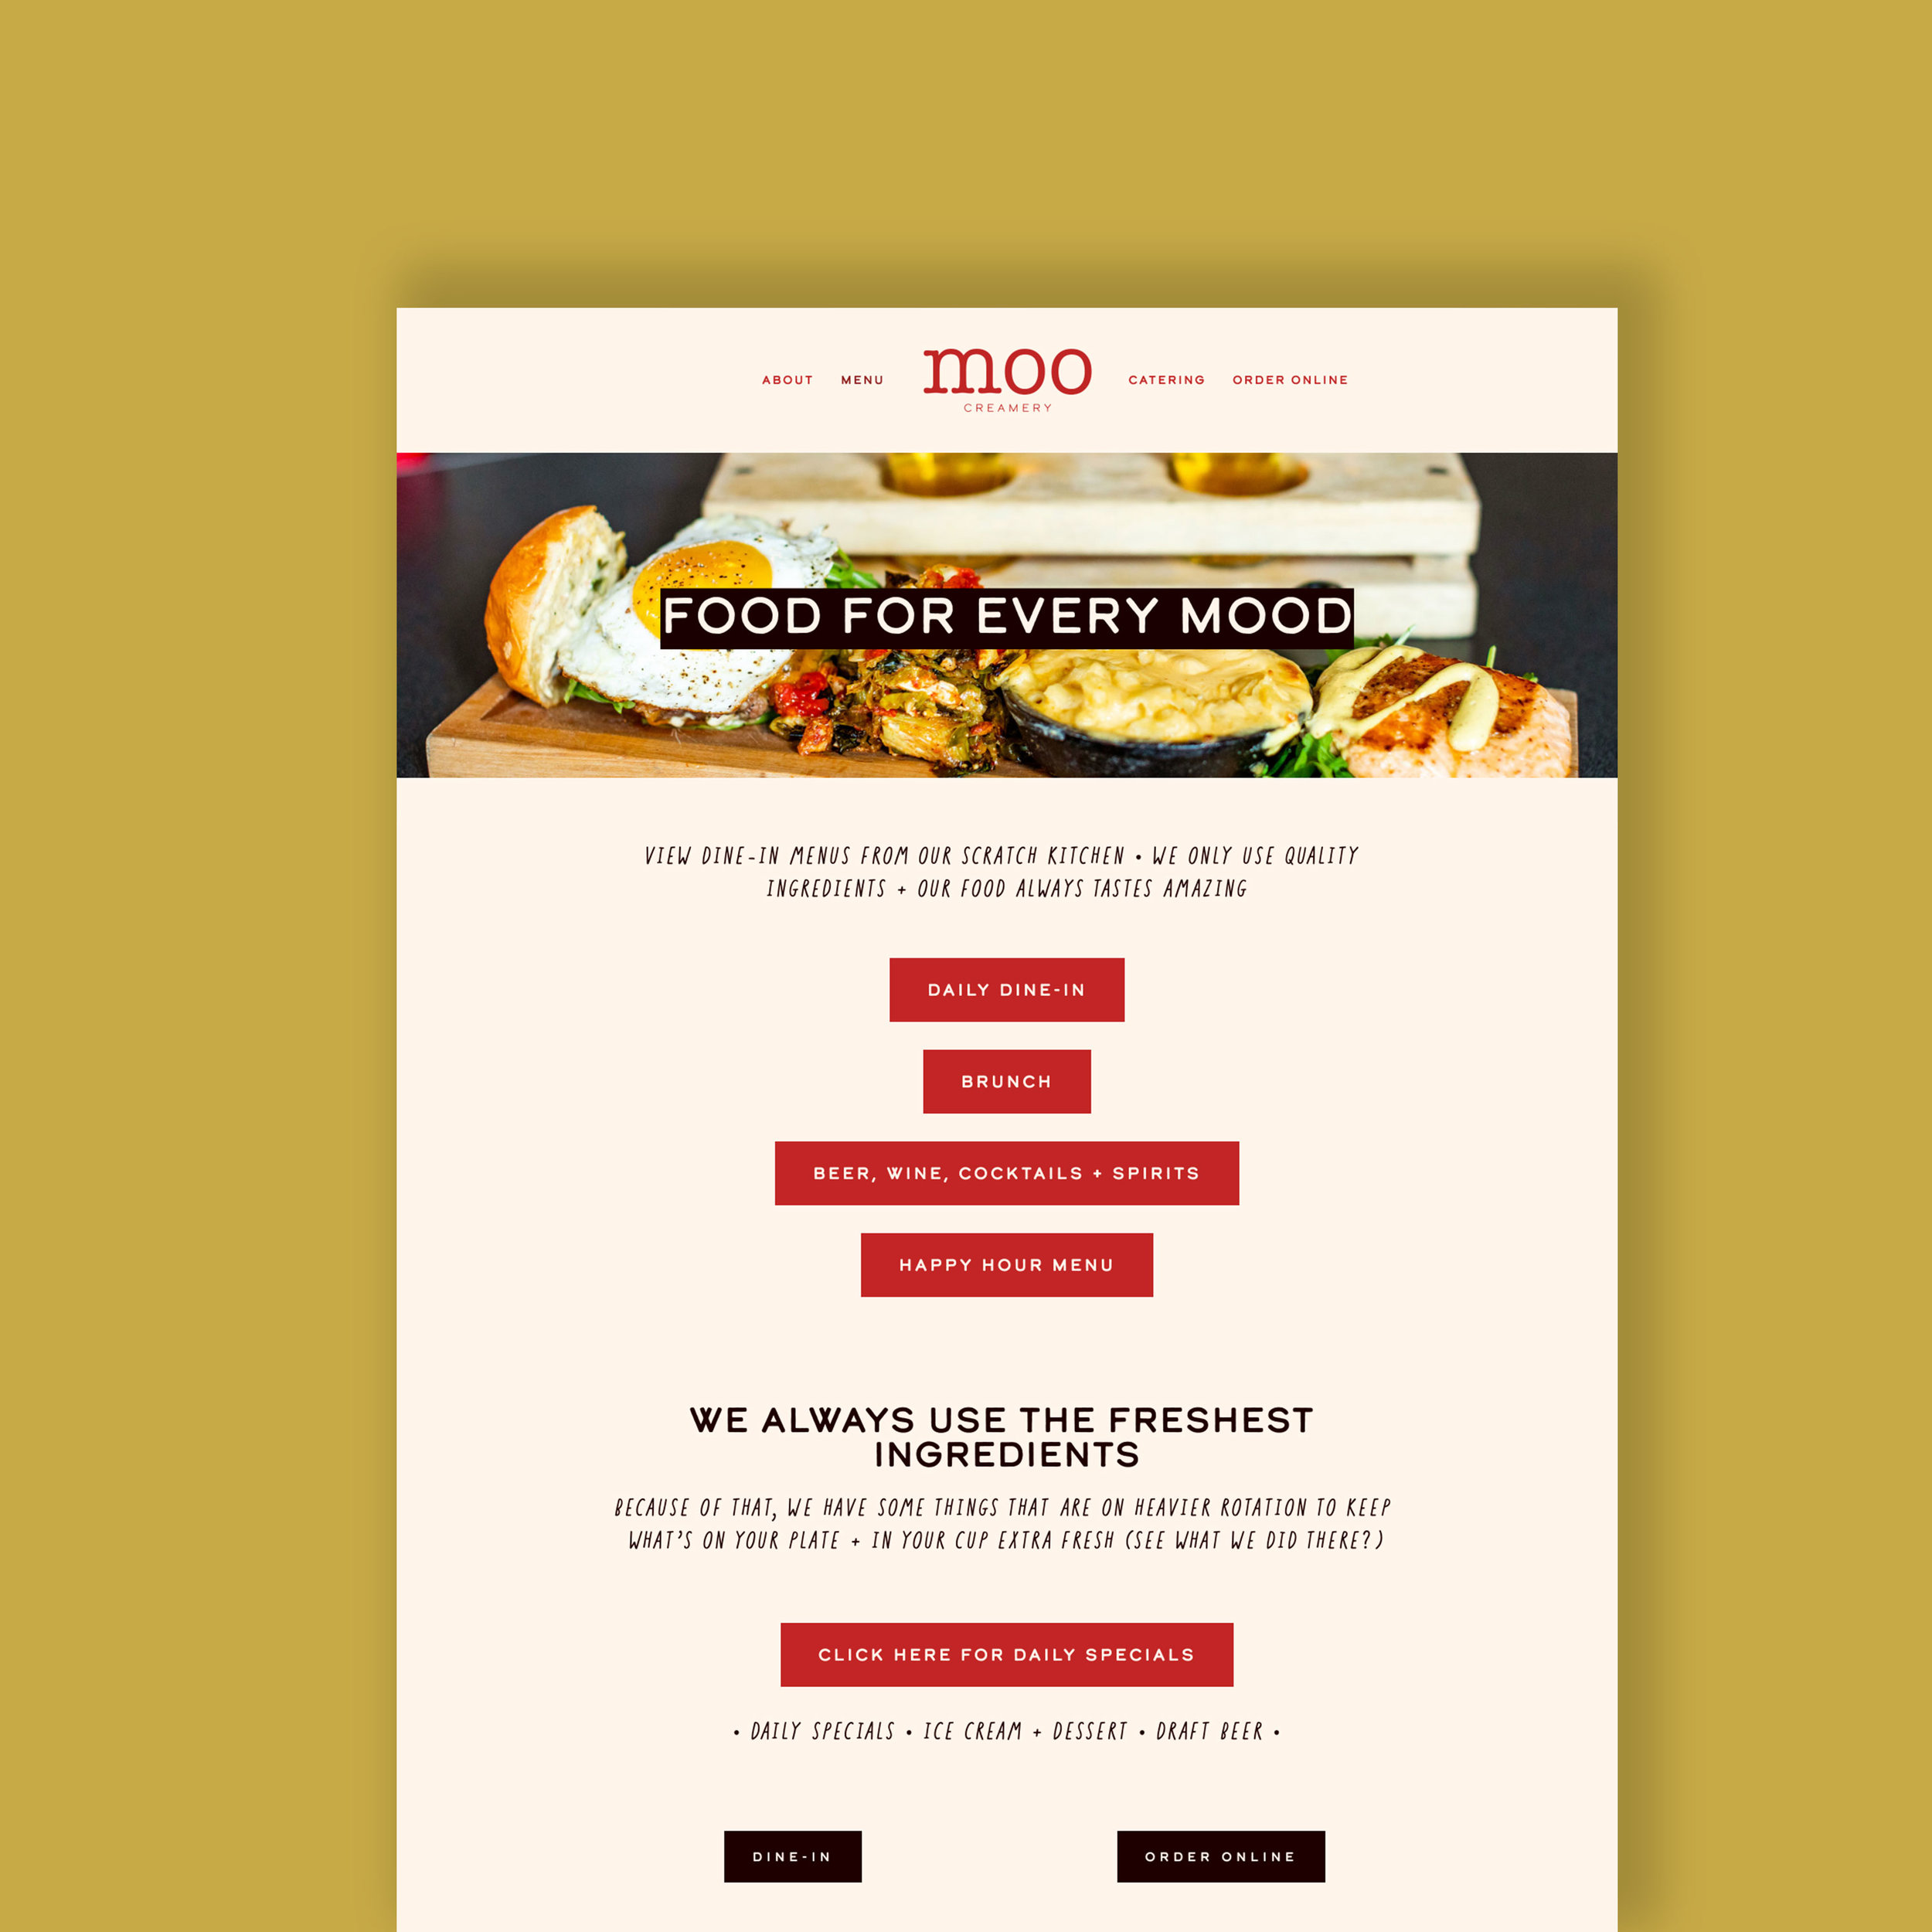 Moo-Creamery-Promotion_Website_3.jpg